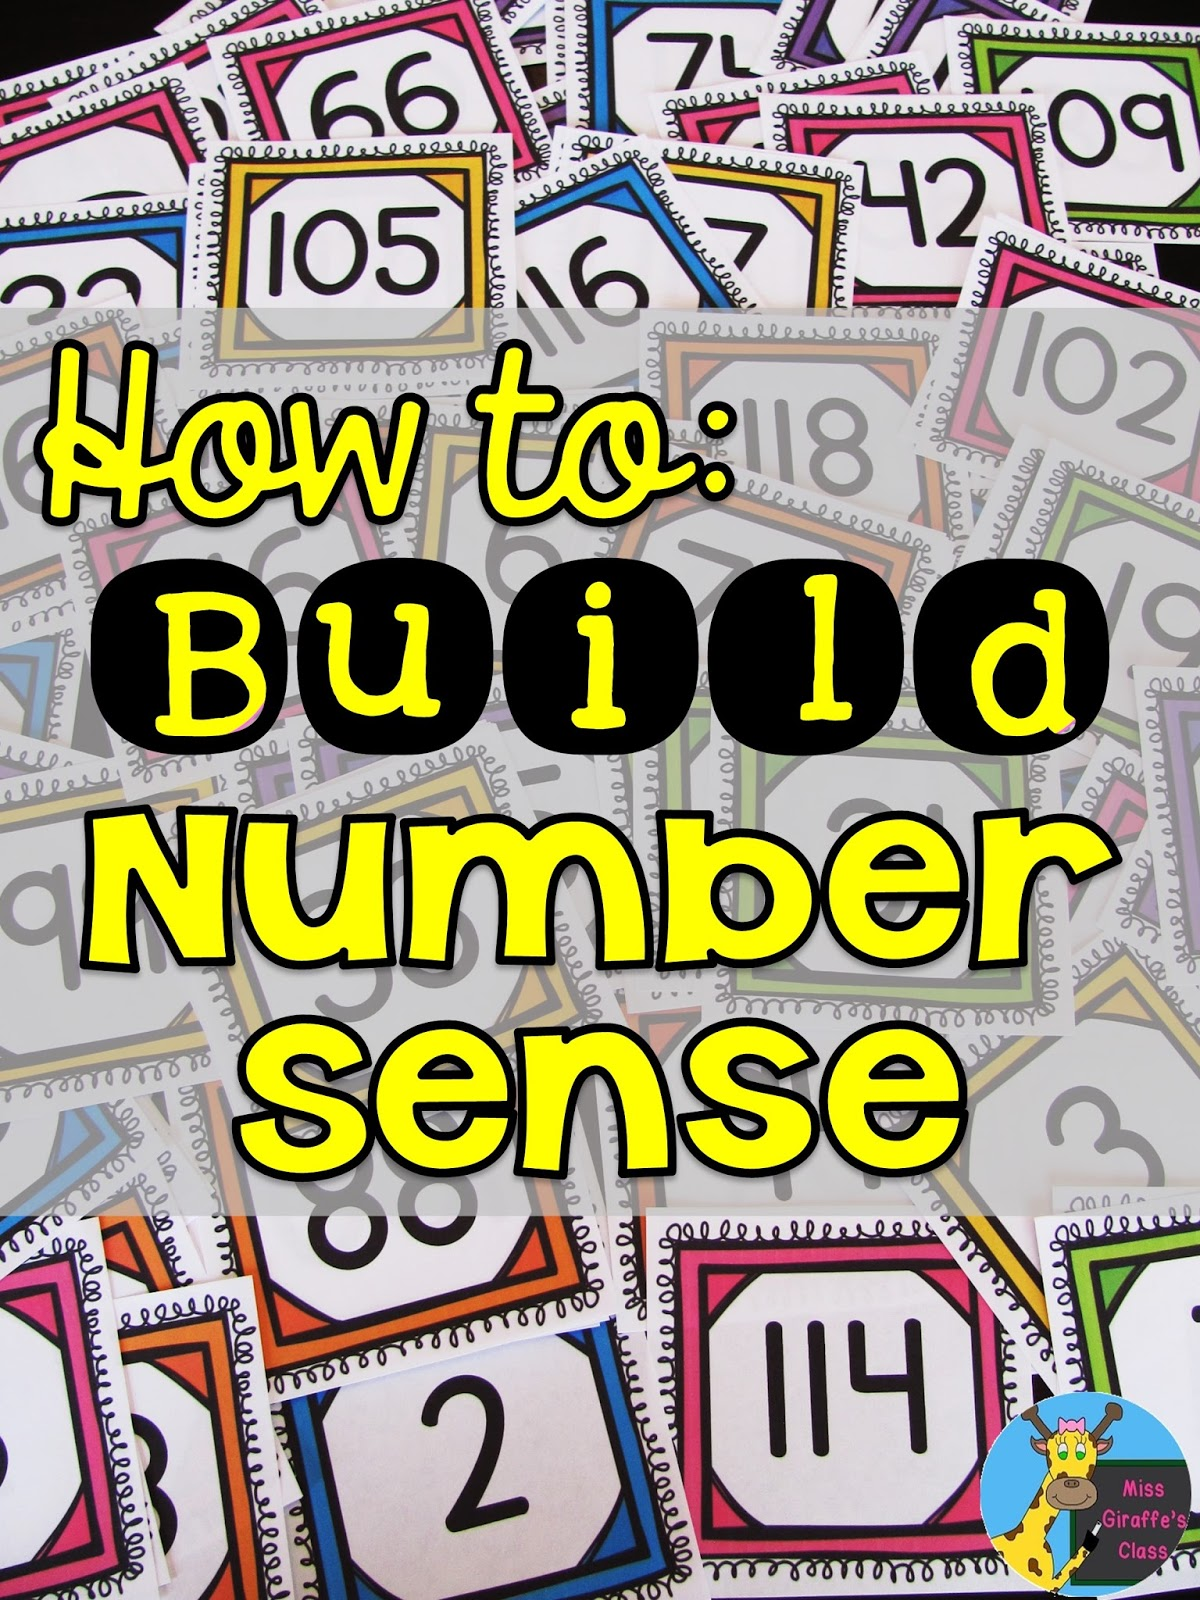 small resolution of Miss Giraffe's Class: Building Number Sense in First Grade